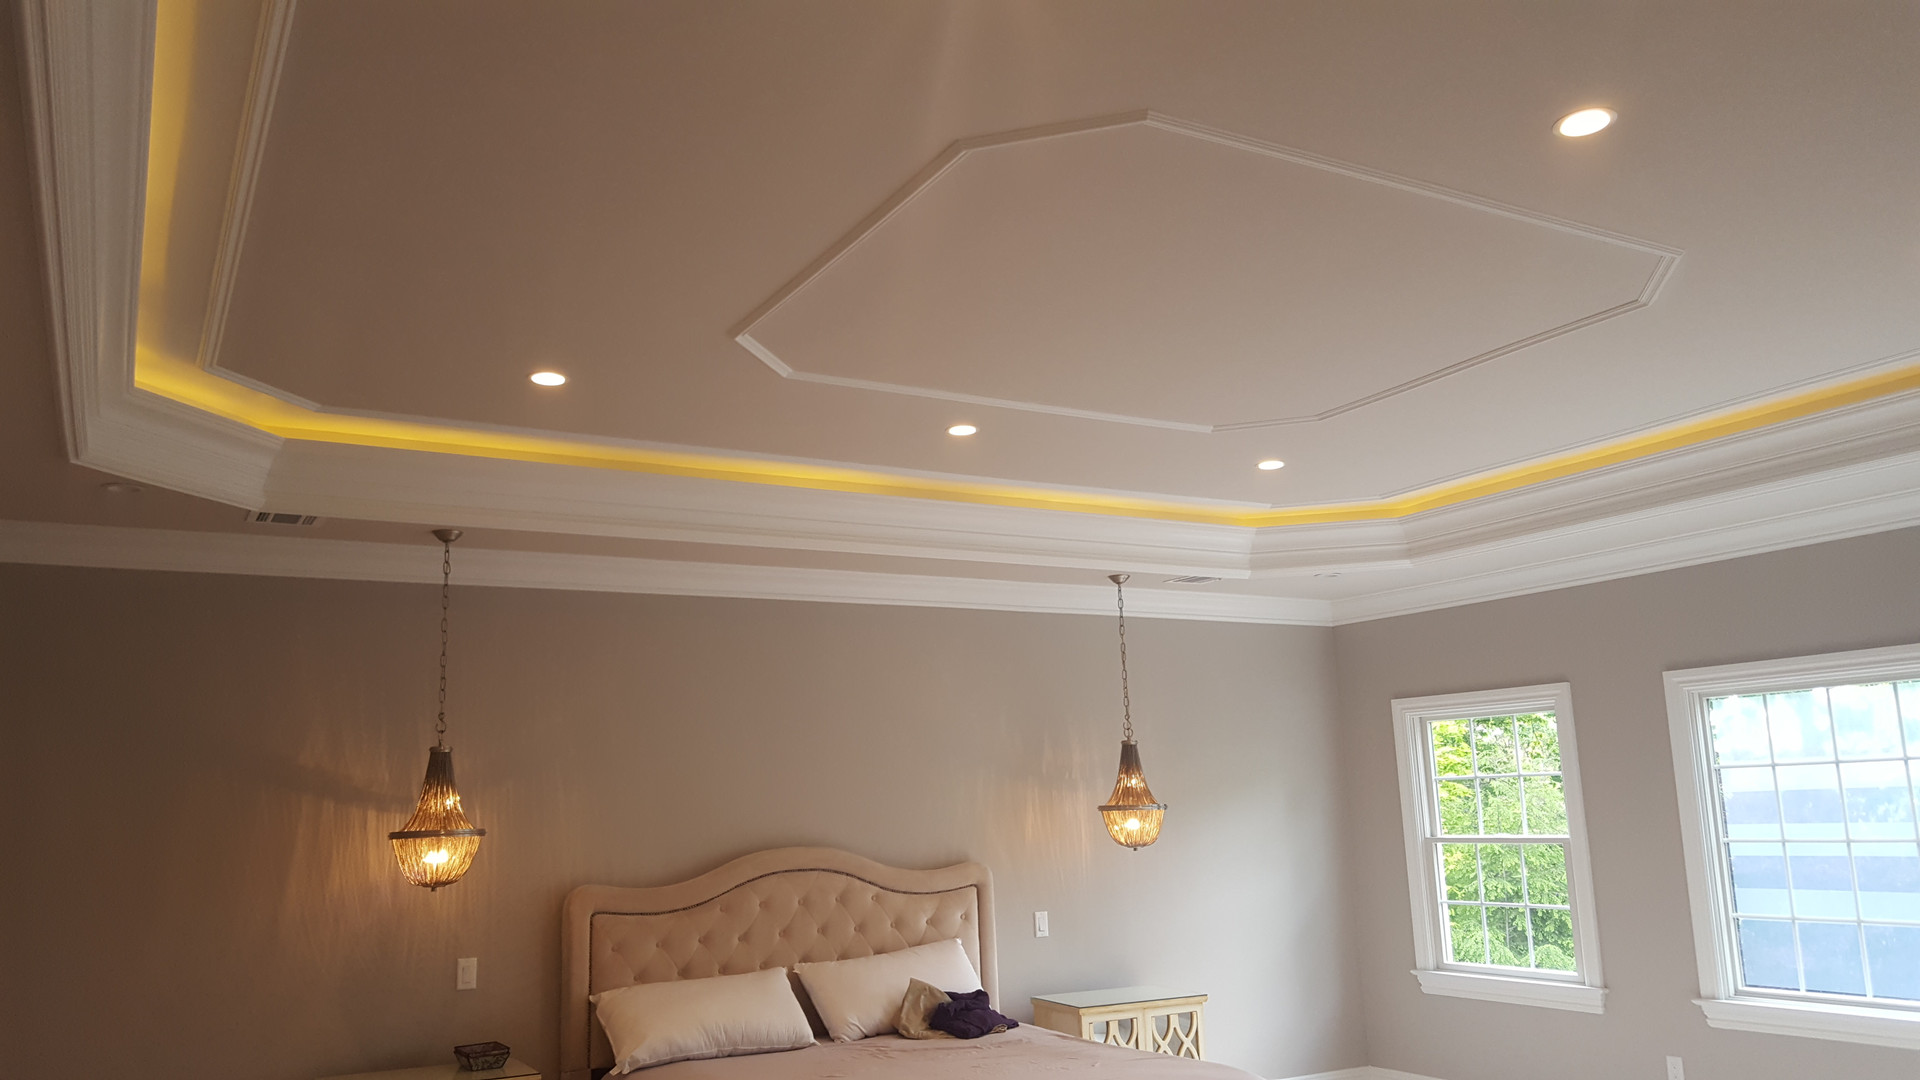 CEILING, WALLS & CROWNMOULDINGS PAINTED